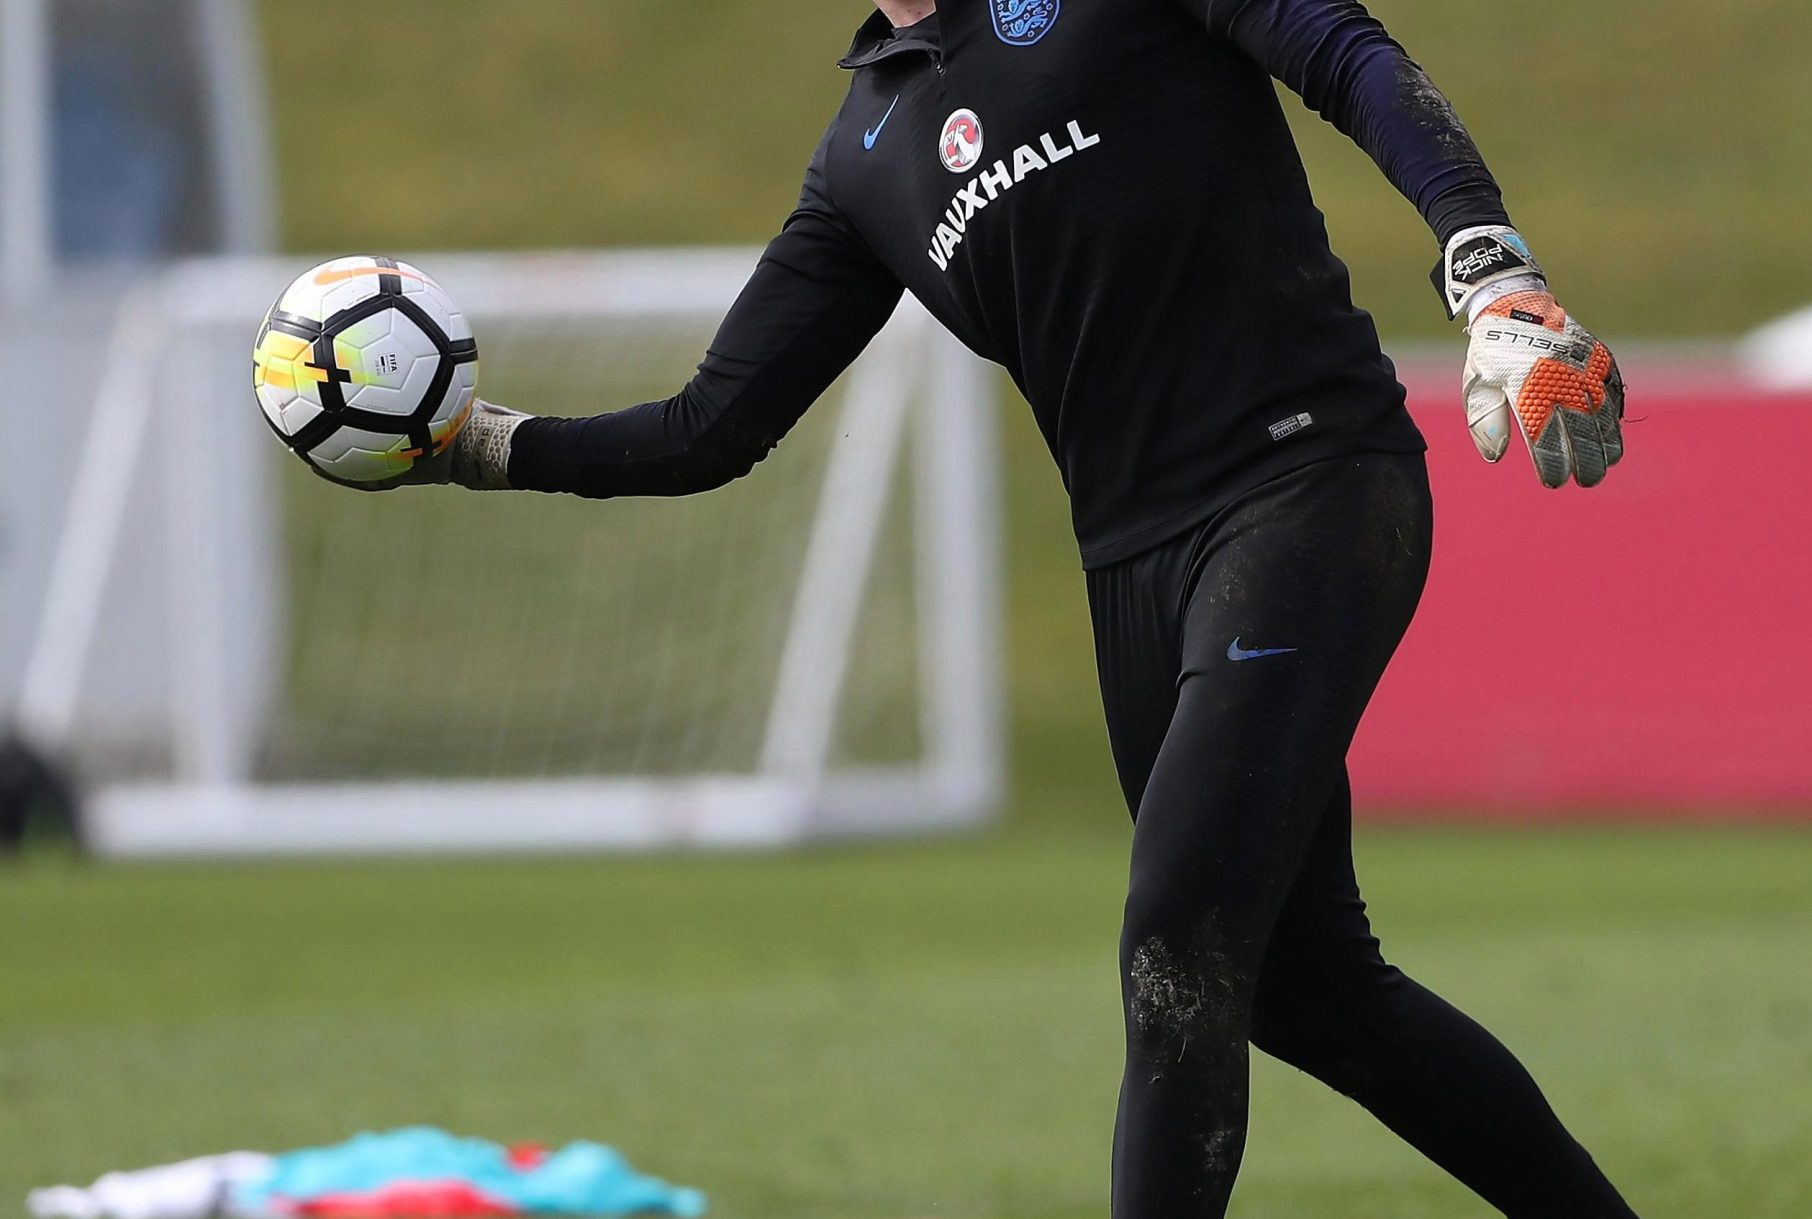 Nick Pope got a helping hand from the unfortunate injury to fellow Burnley goalkeeper Tom Heaton and is now hoping to go to the World Cup with England